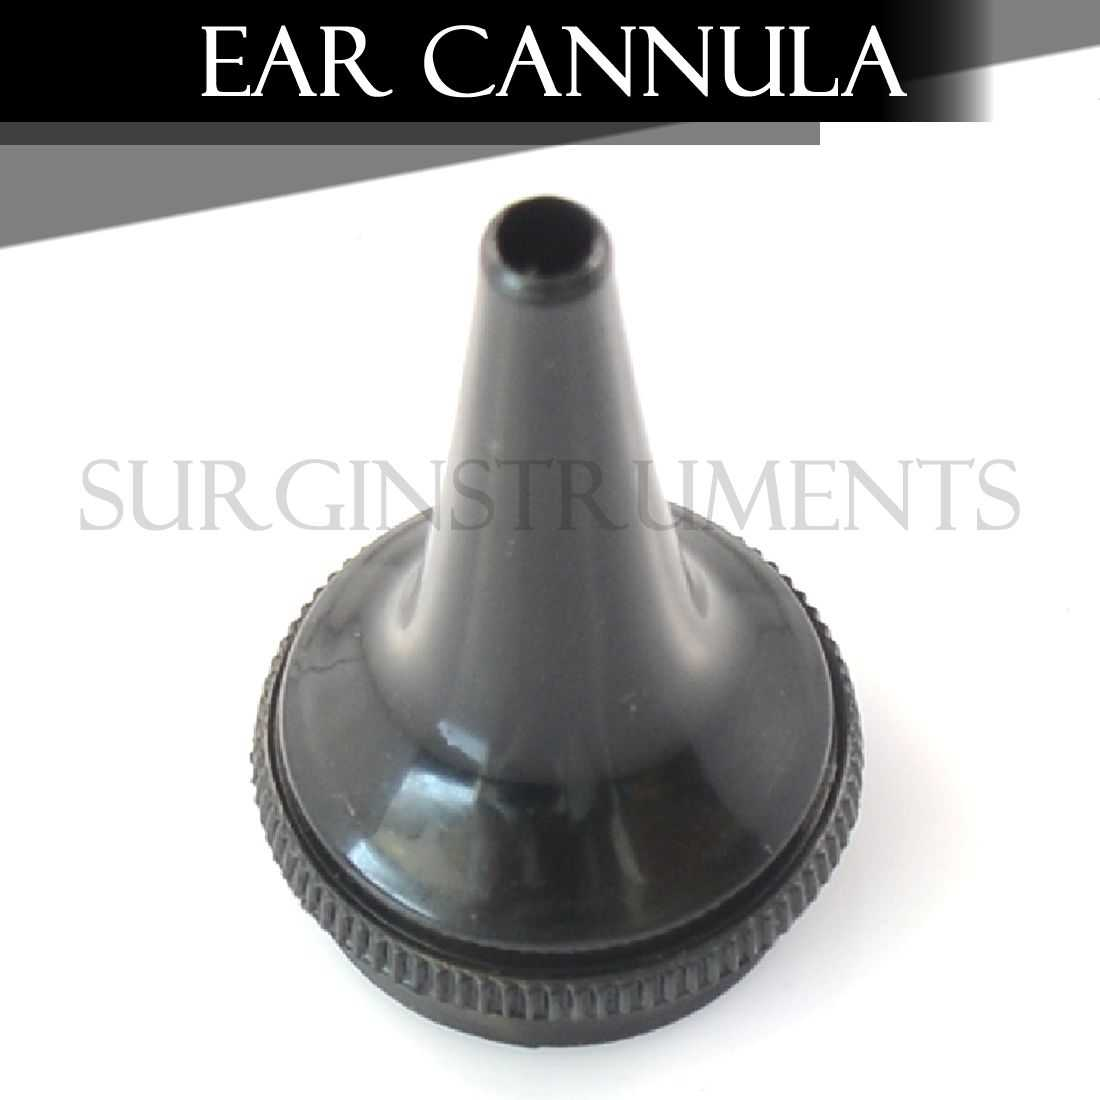 Replacement Ear Cannula For Otoscope Ophthalmoscope ENT Medical Diagnostic